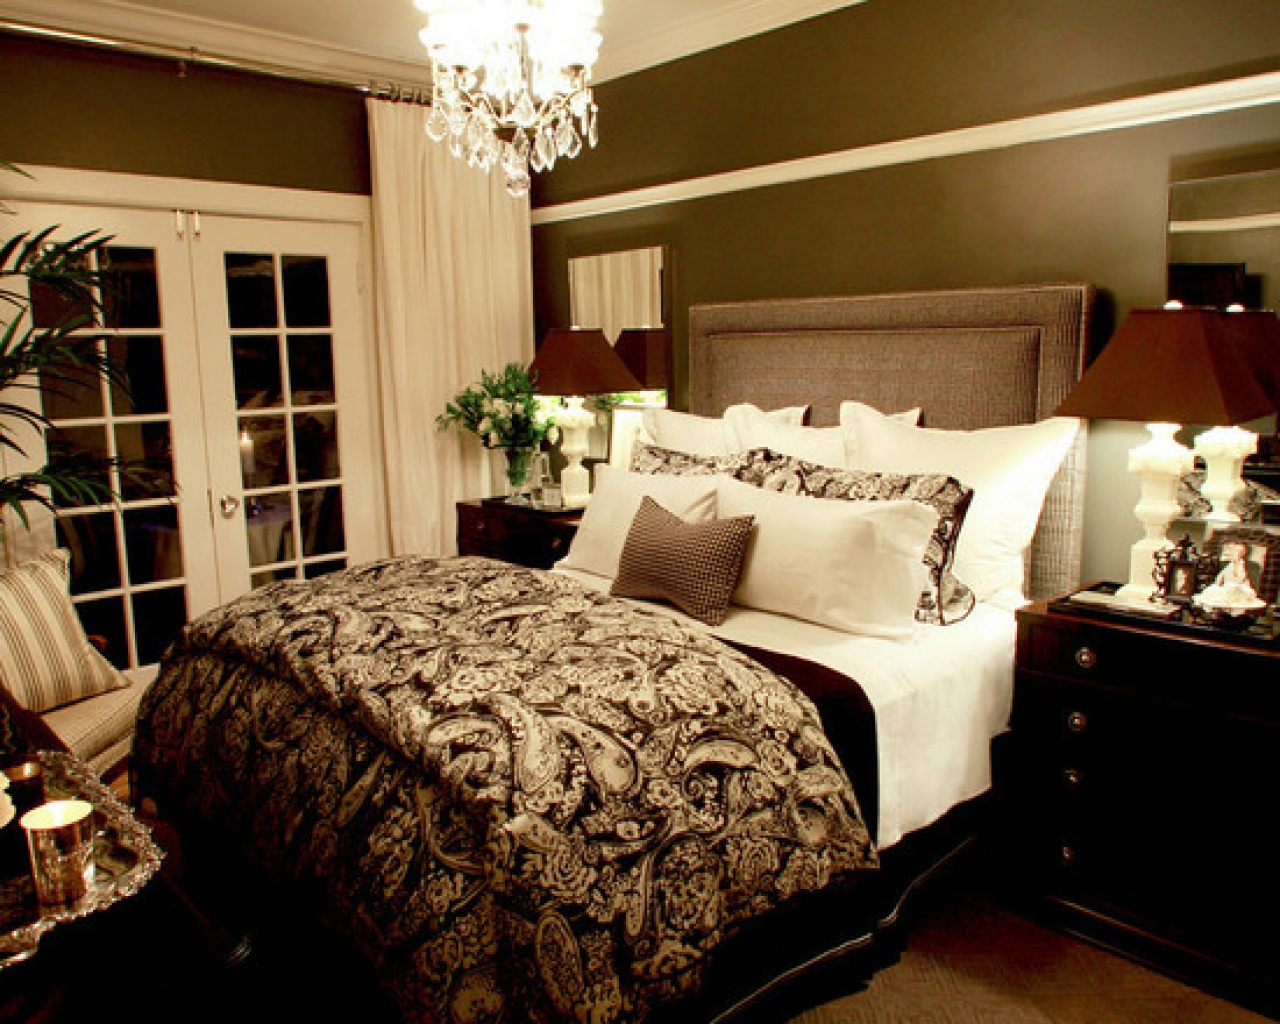 traditional romantic bedroom ideas photo - 1